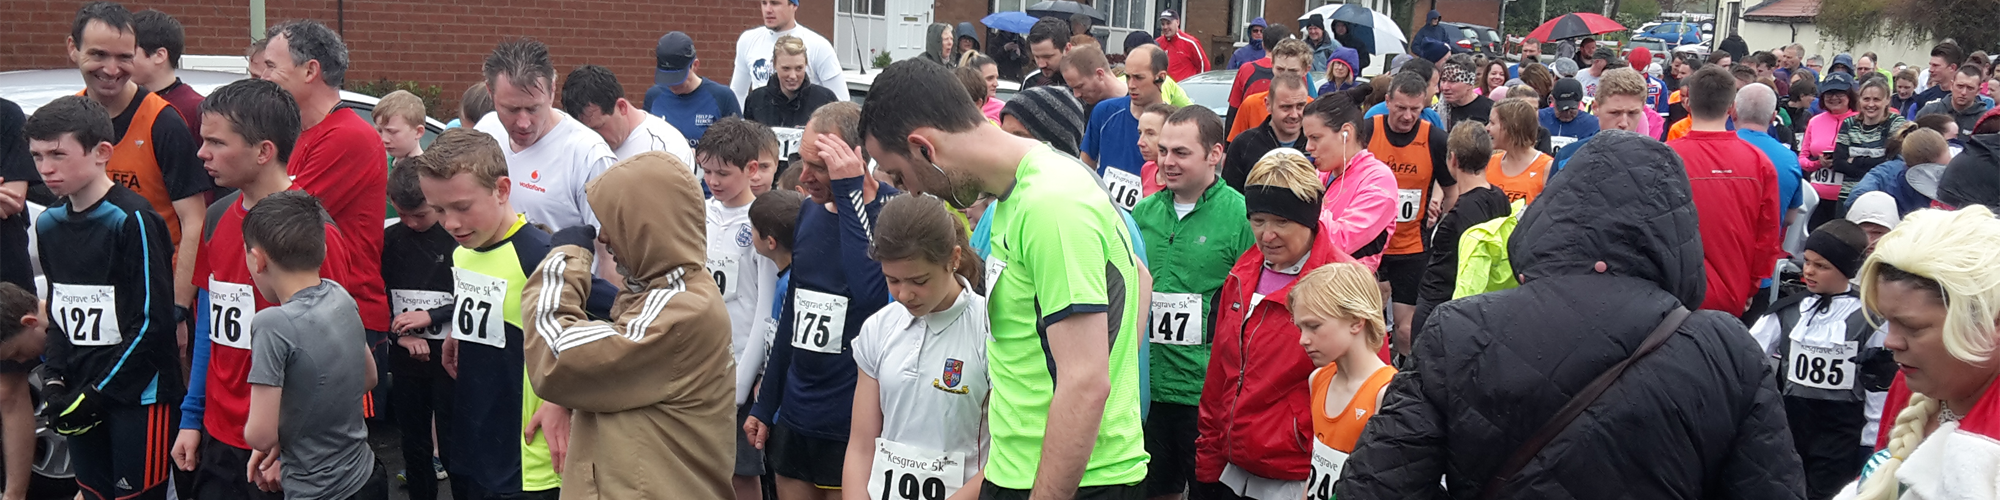 'kesgrave 5k' fun run